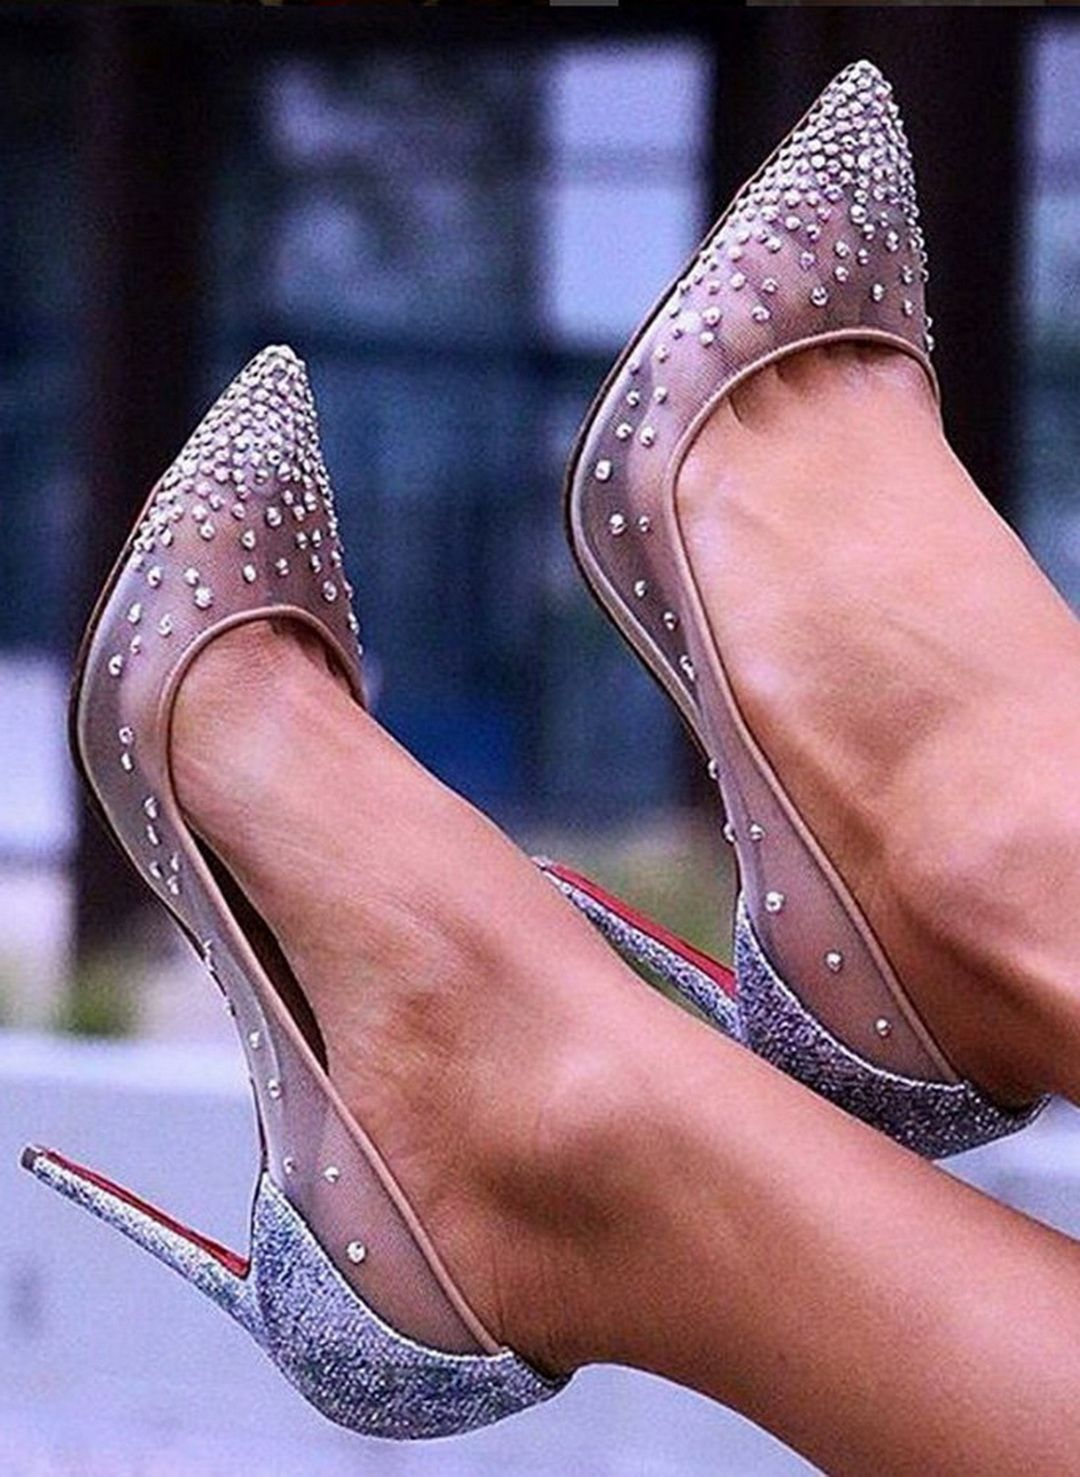 outlet store 4f03a a8d47 Christian Louboutin Follies Strass | รองเท้าเจ้าสาว in 2019 ...